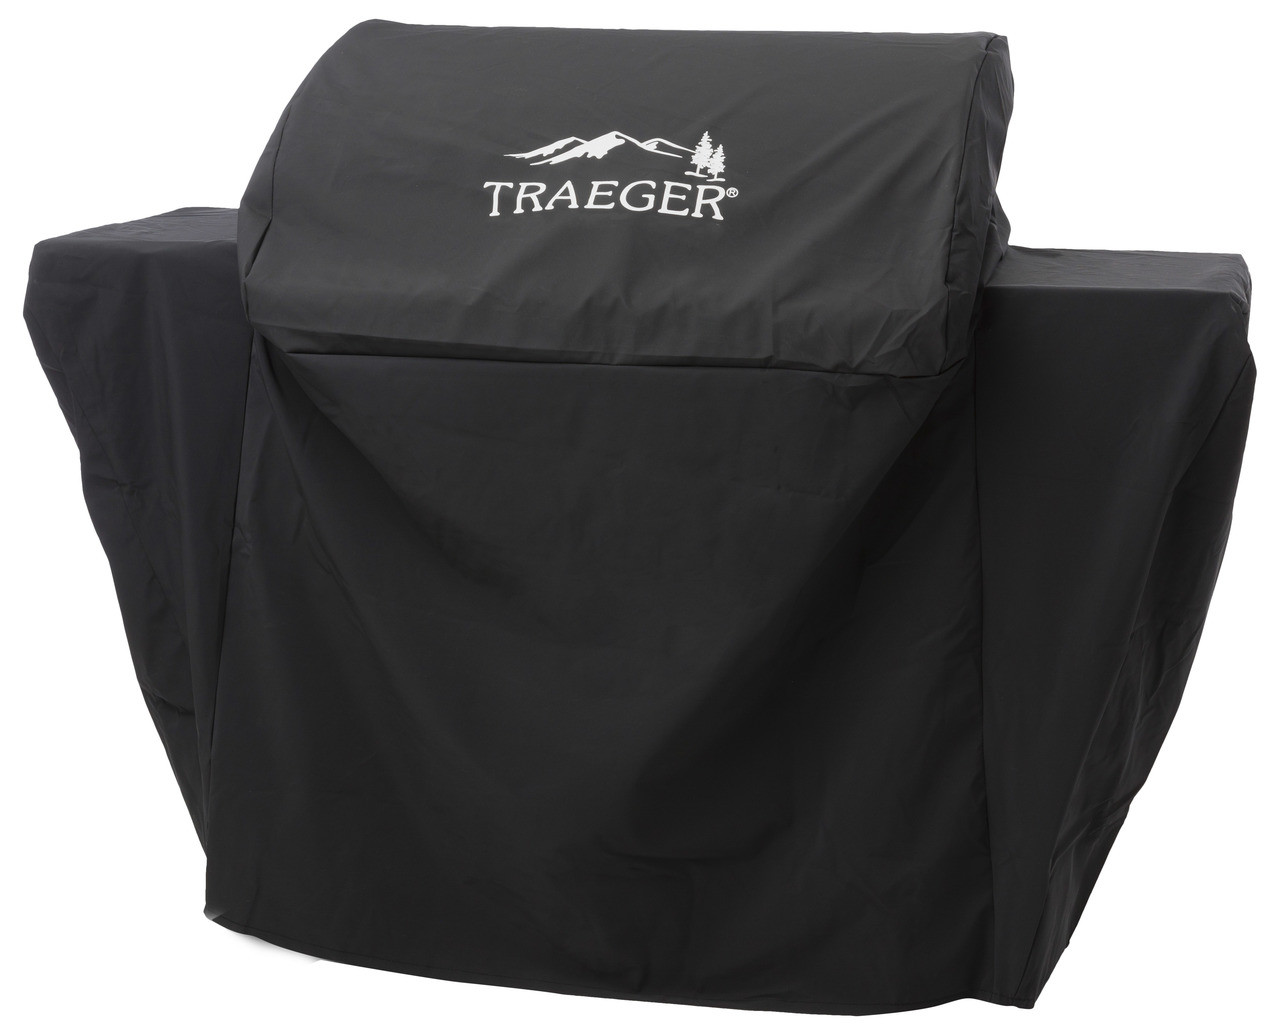 BAC375 TRAEGER FULL-LENGTH COVER - SELECT FREE USPS SHIPPING